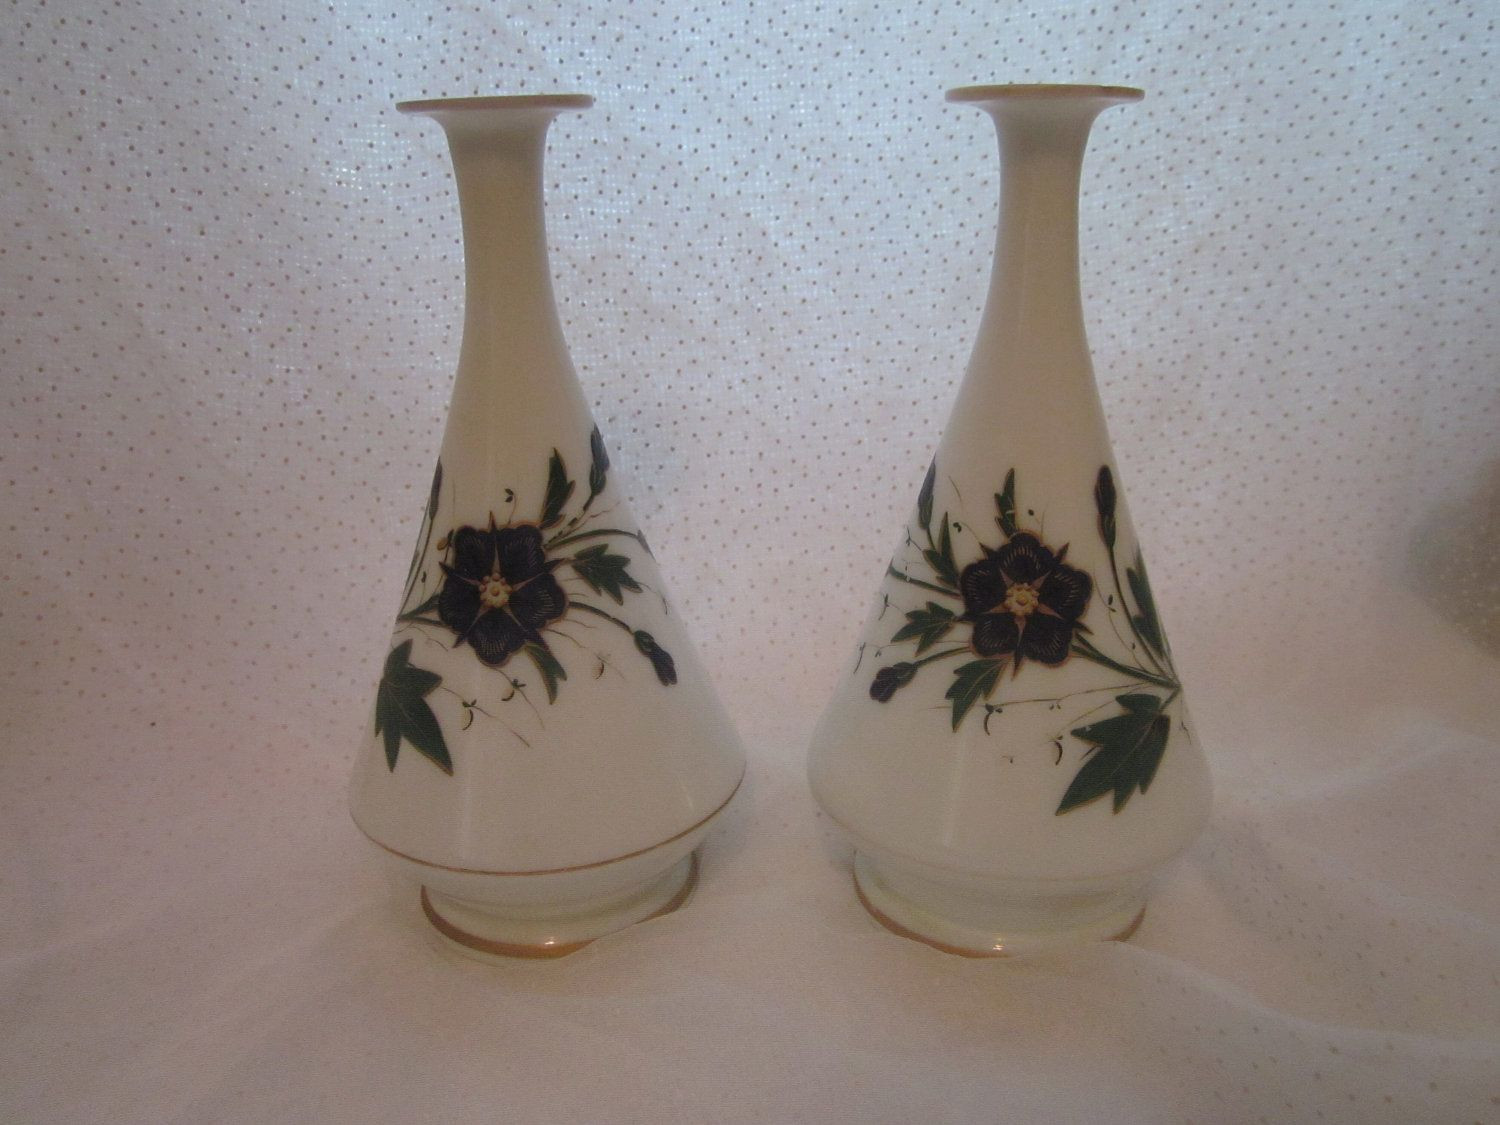 lenox heart vase of vintage milk glass vases with handpainted blue flowers bud vase lot with regard to pair of shabby sweet vintage milk glass vases hand painted blue flowers by mendozamvintage on etsy